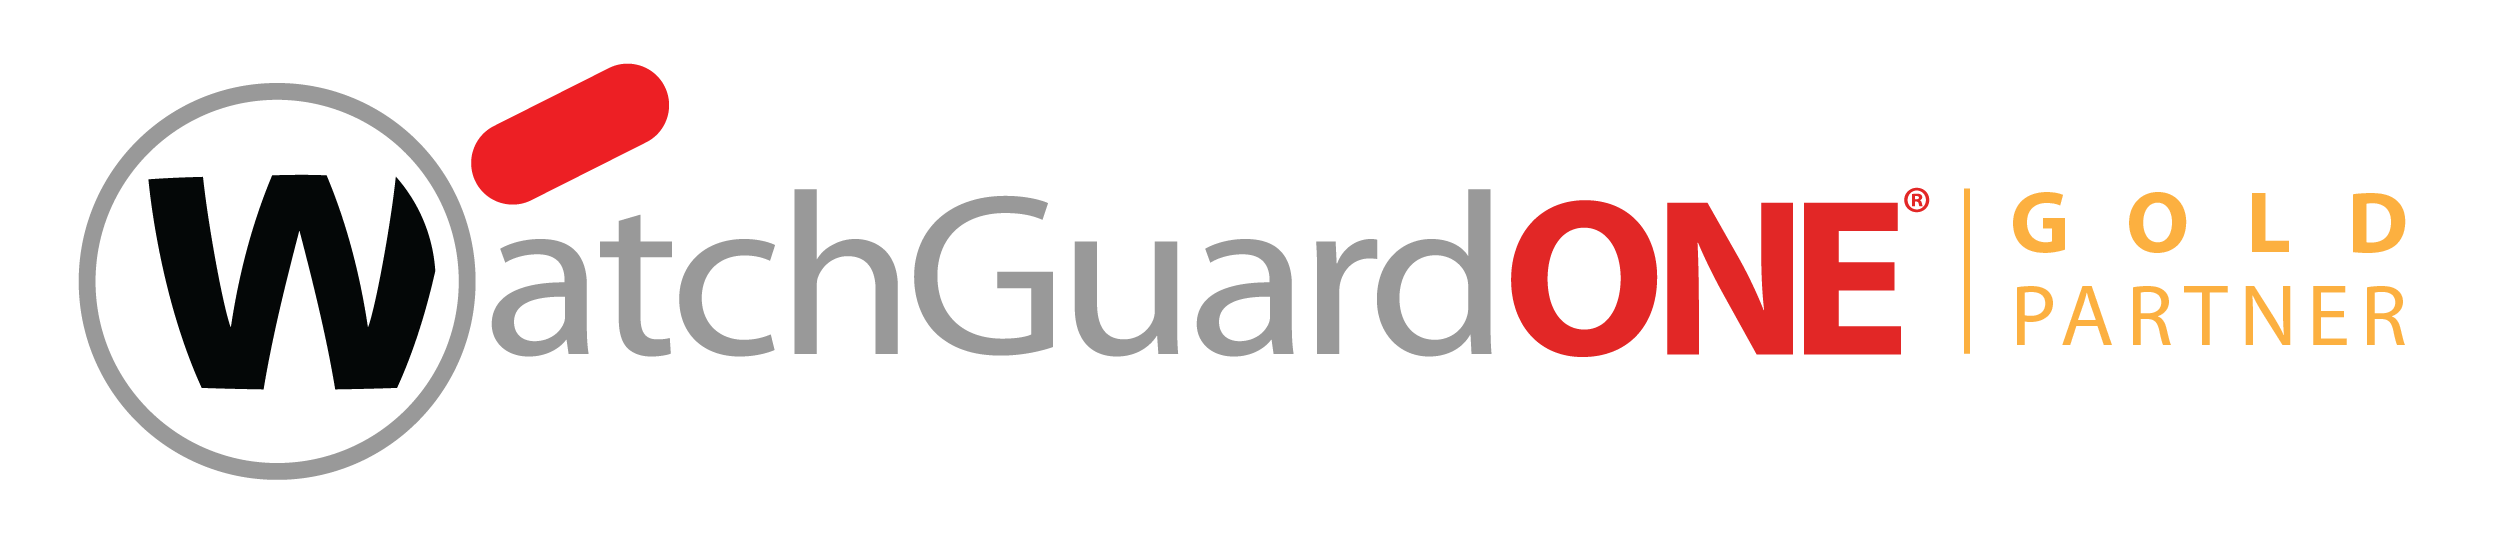 WatchGuard Hamburg